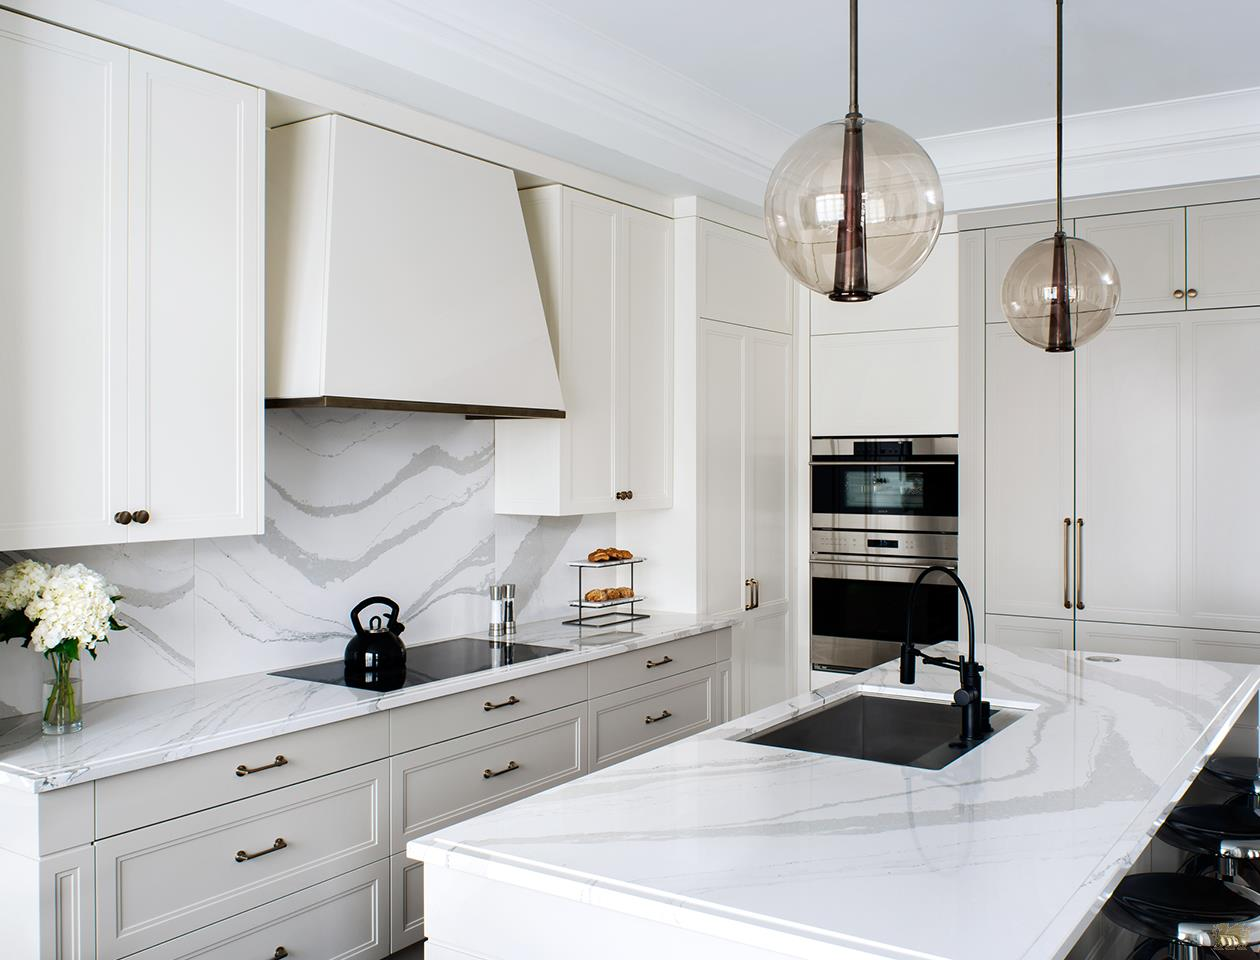 Cambria Quartz Vs Granite Countertops K Amp D Countertops